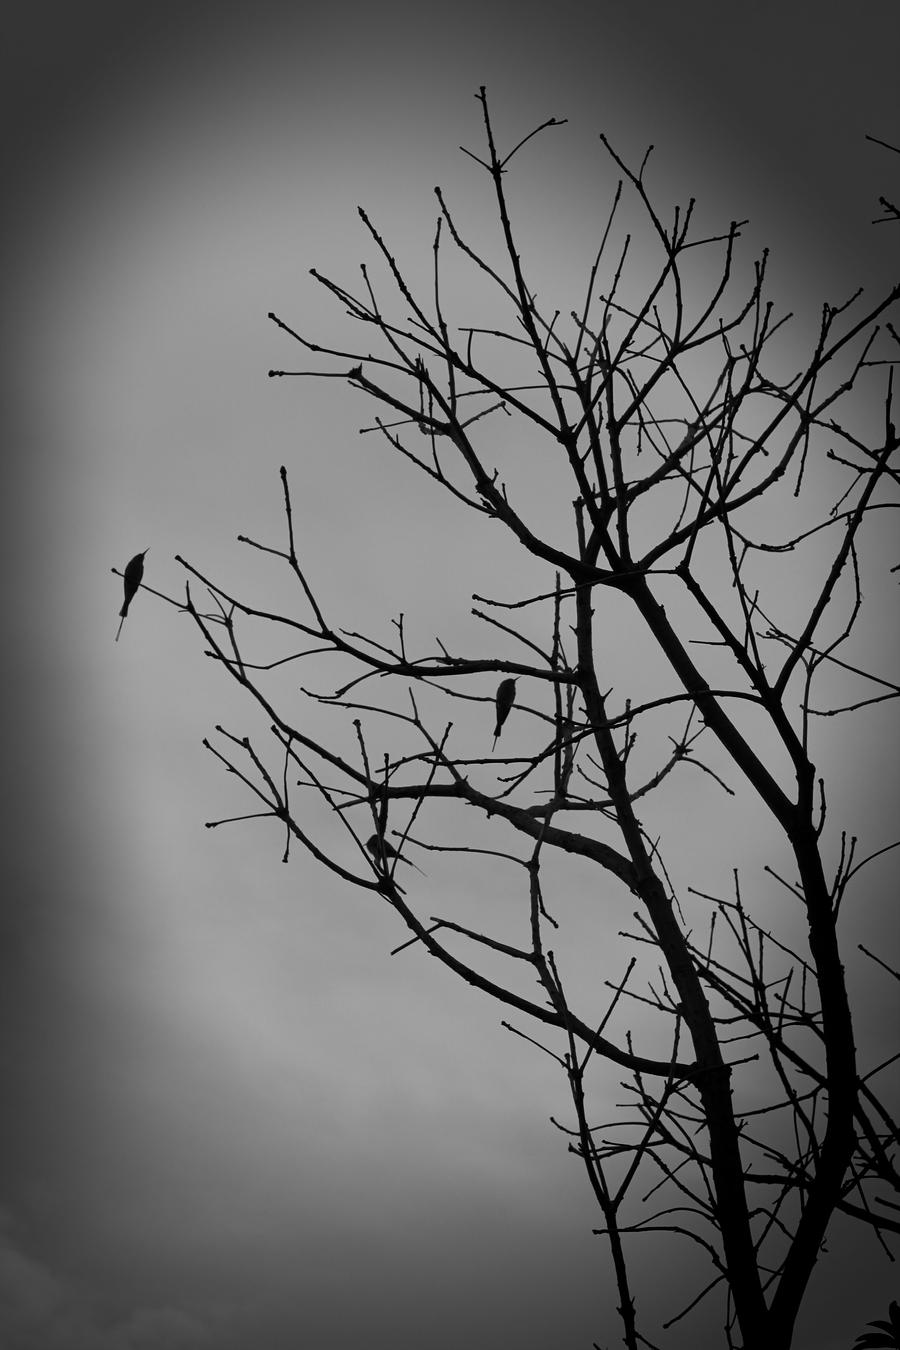 Tree Without Leaves By Fahadee On Deviantart